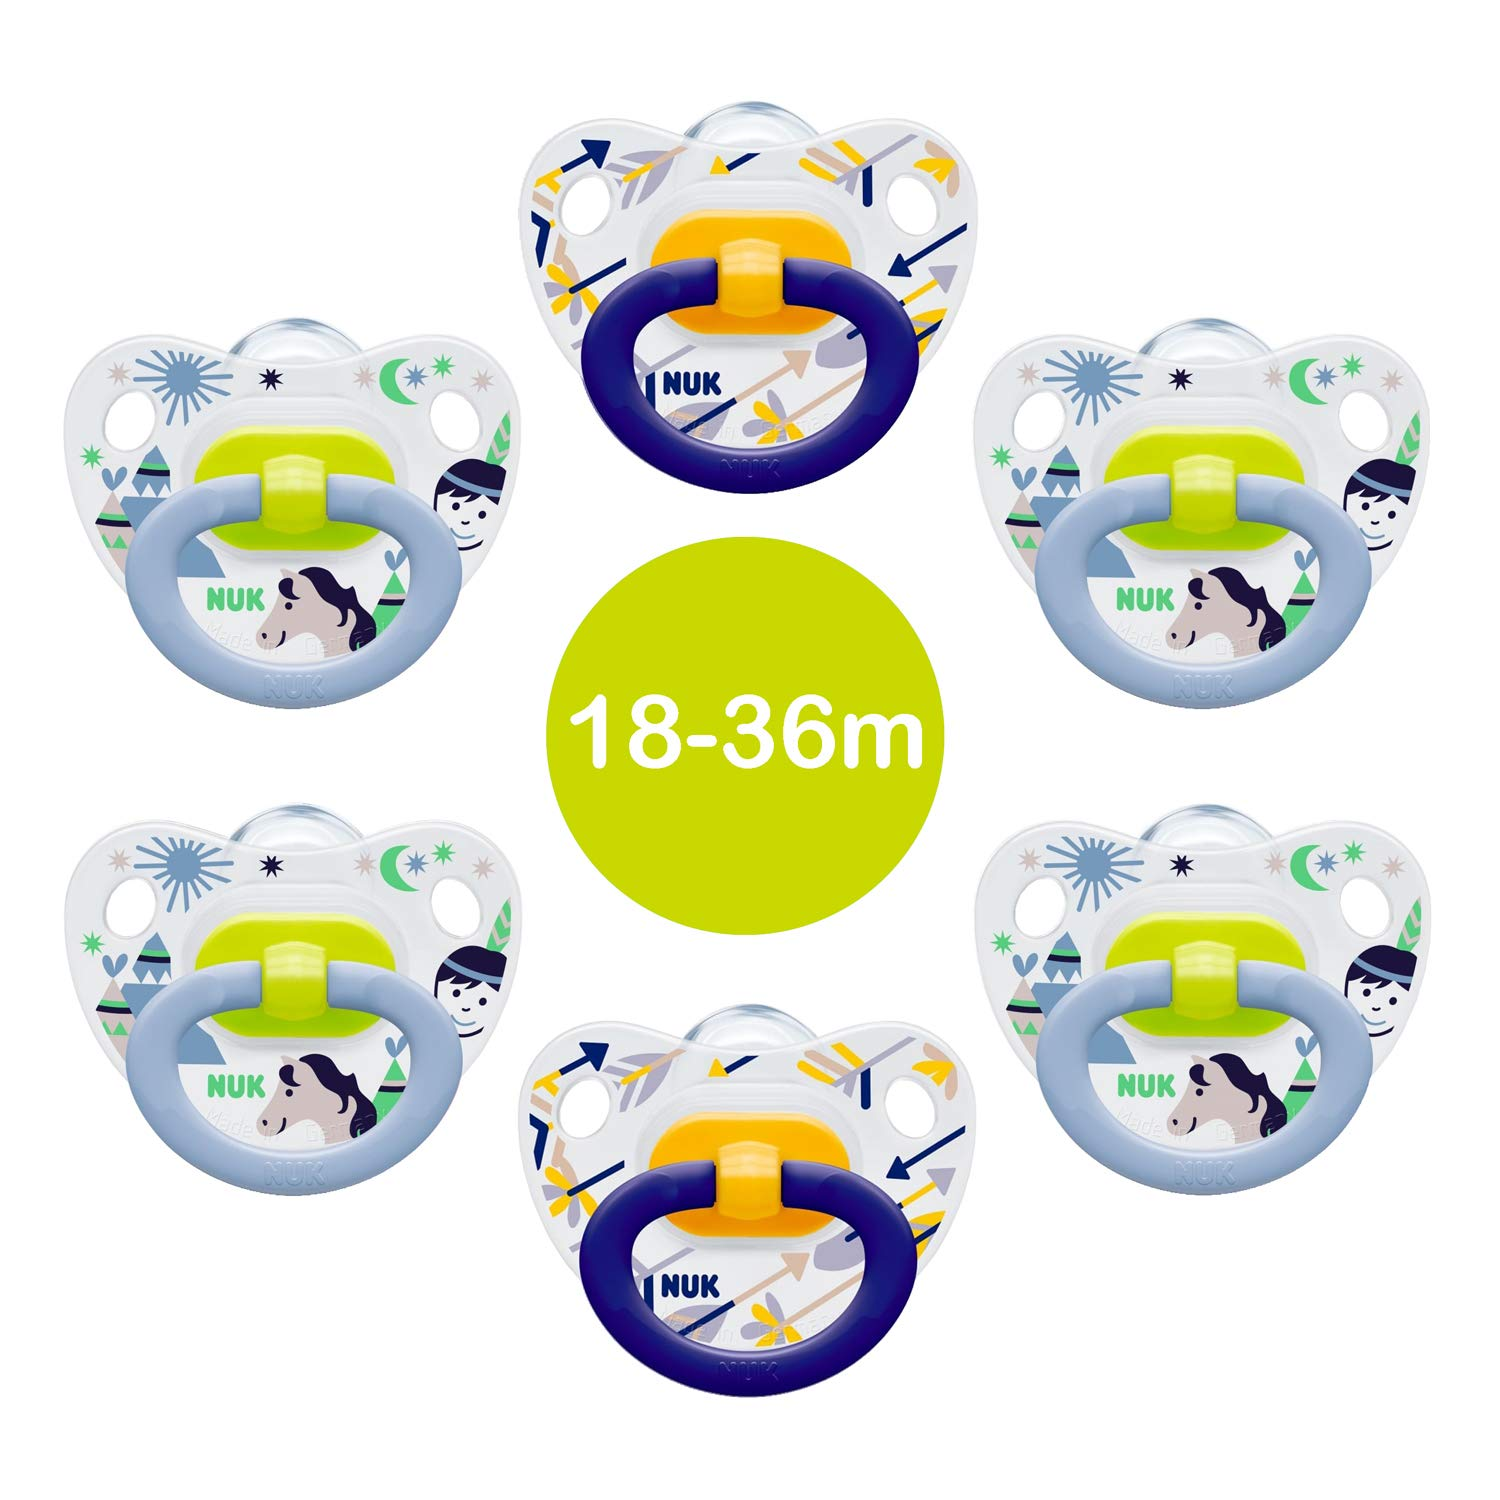 6 x NUK Happy Days BPA Free Silicone Dummy Soothers (Boys Set) - Flat Orthodontic Shape - Suitable for Babies Aged 18-36 mths. NUK Soothers